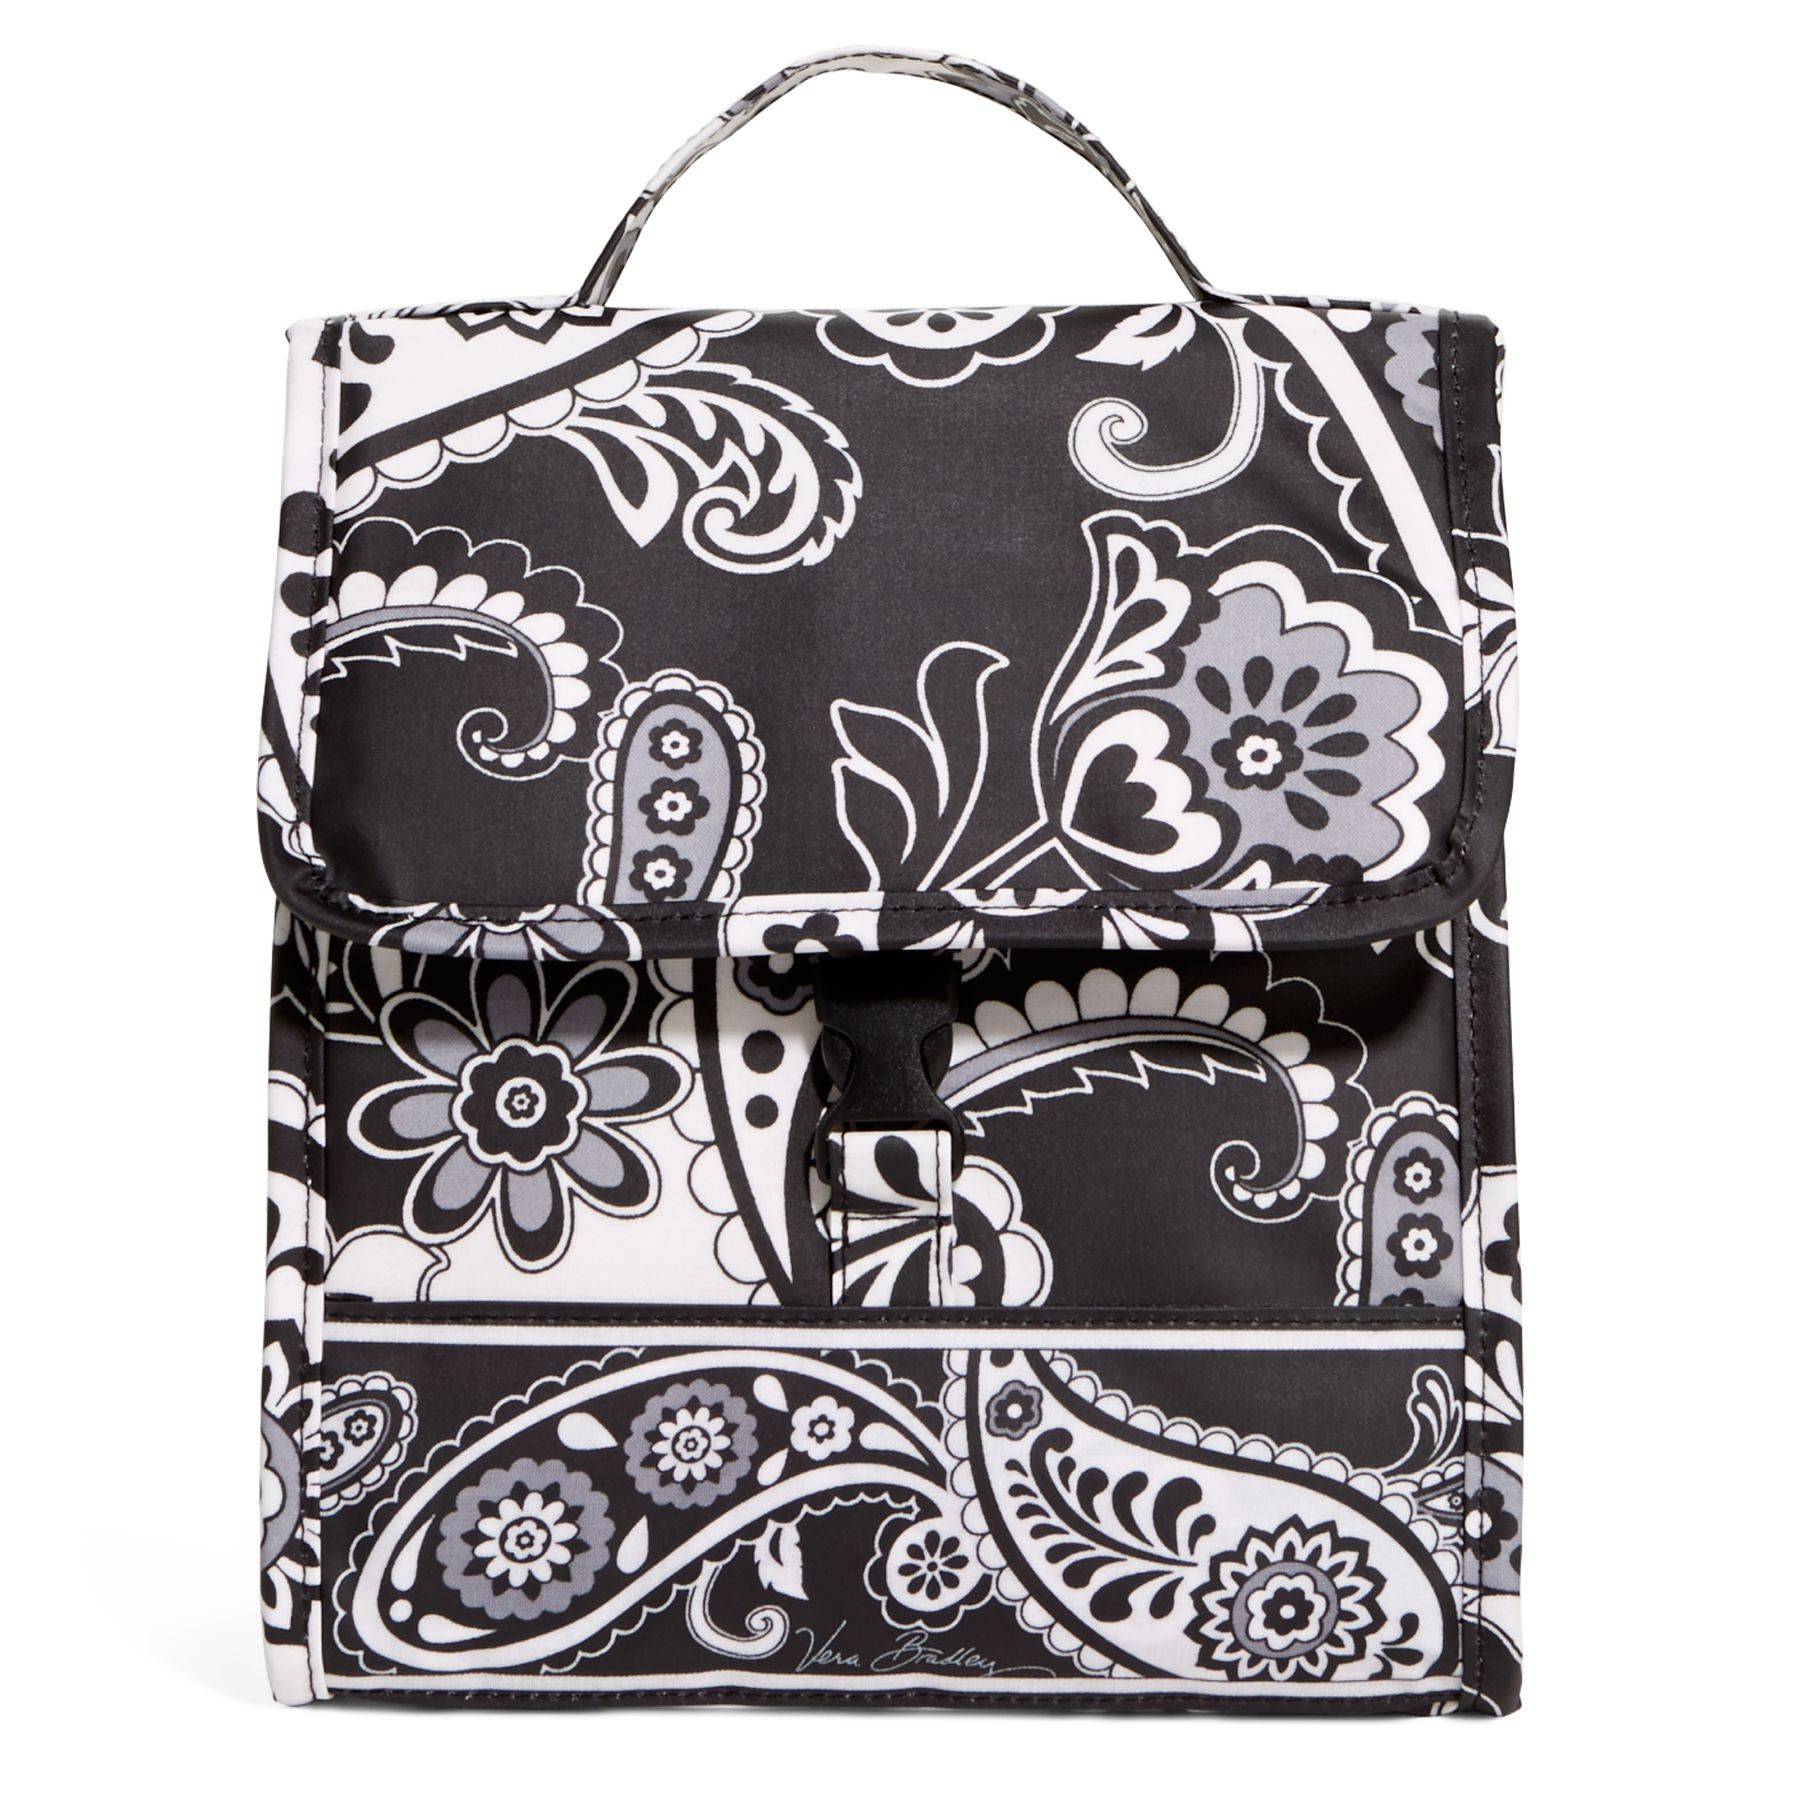 Vera Bradley Lunch Sack Bag in Midnight Paisley